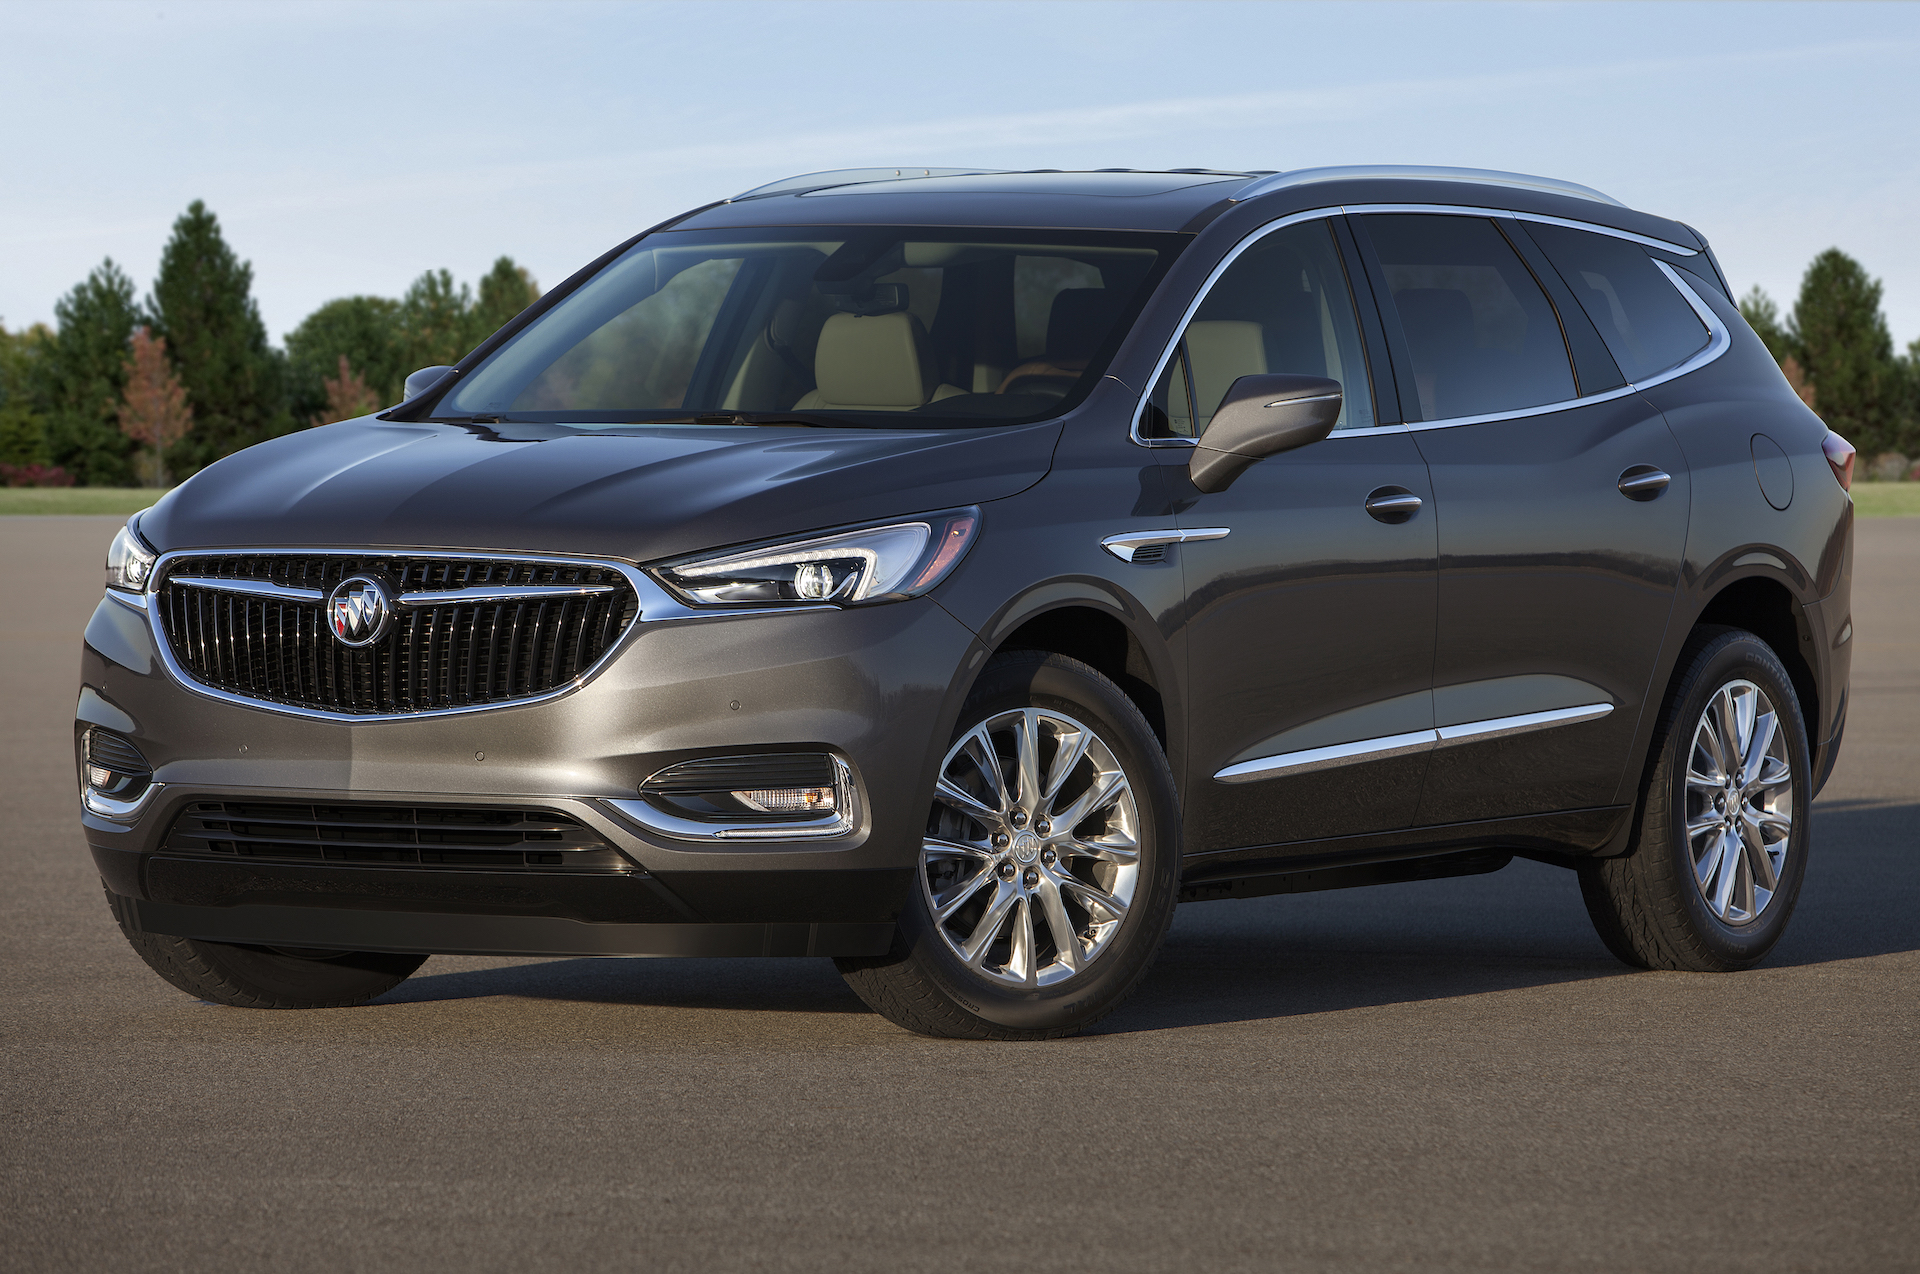 sale sapphire new dark awd enclave vehicle in va lynchburg buick battery vehicledetails metallic photo leather blue for